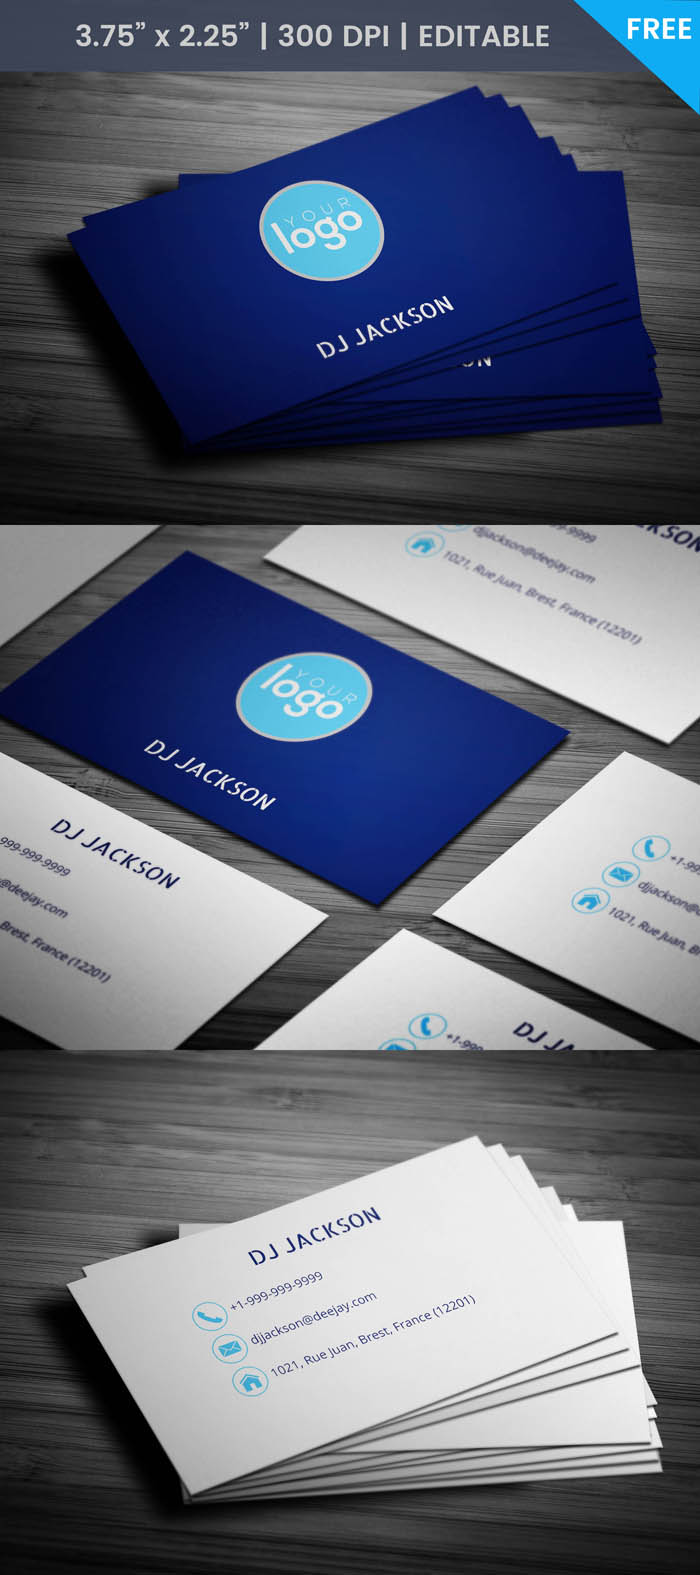 Minimal Dj Business Card - Full Preview